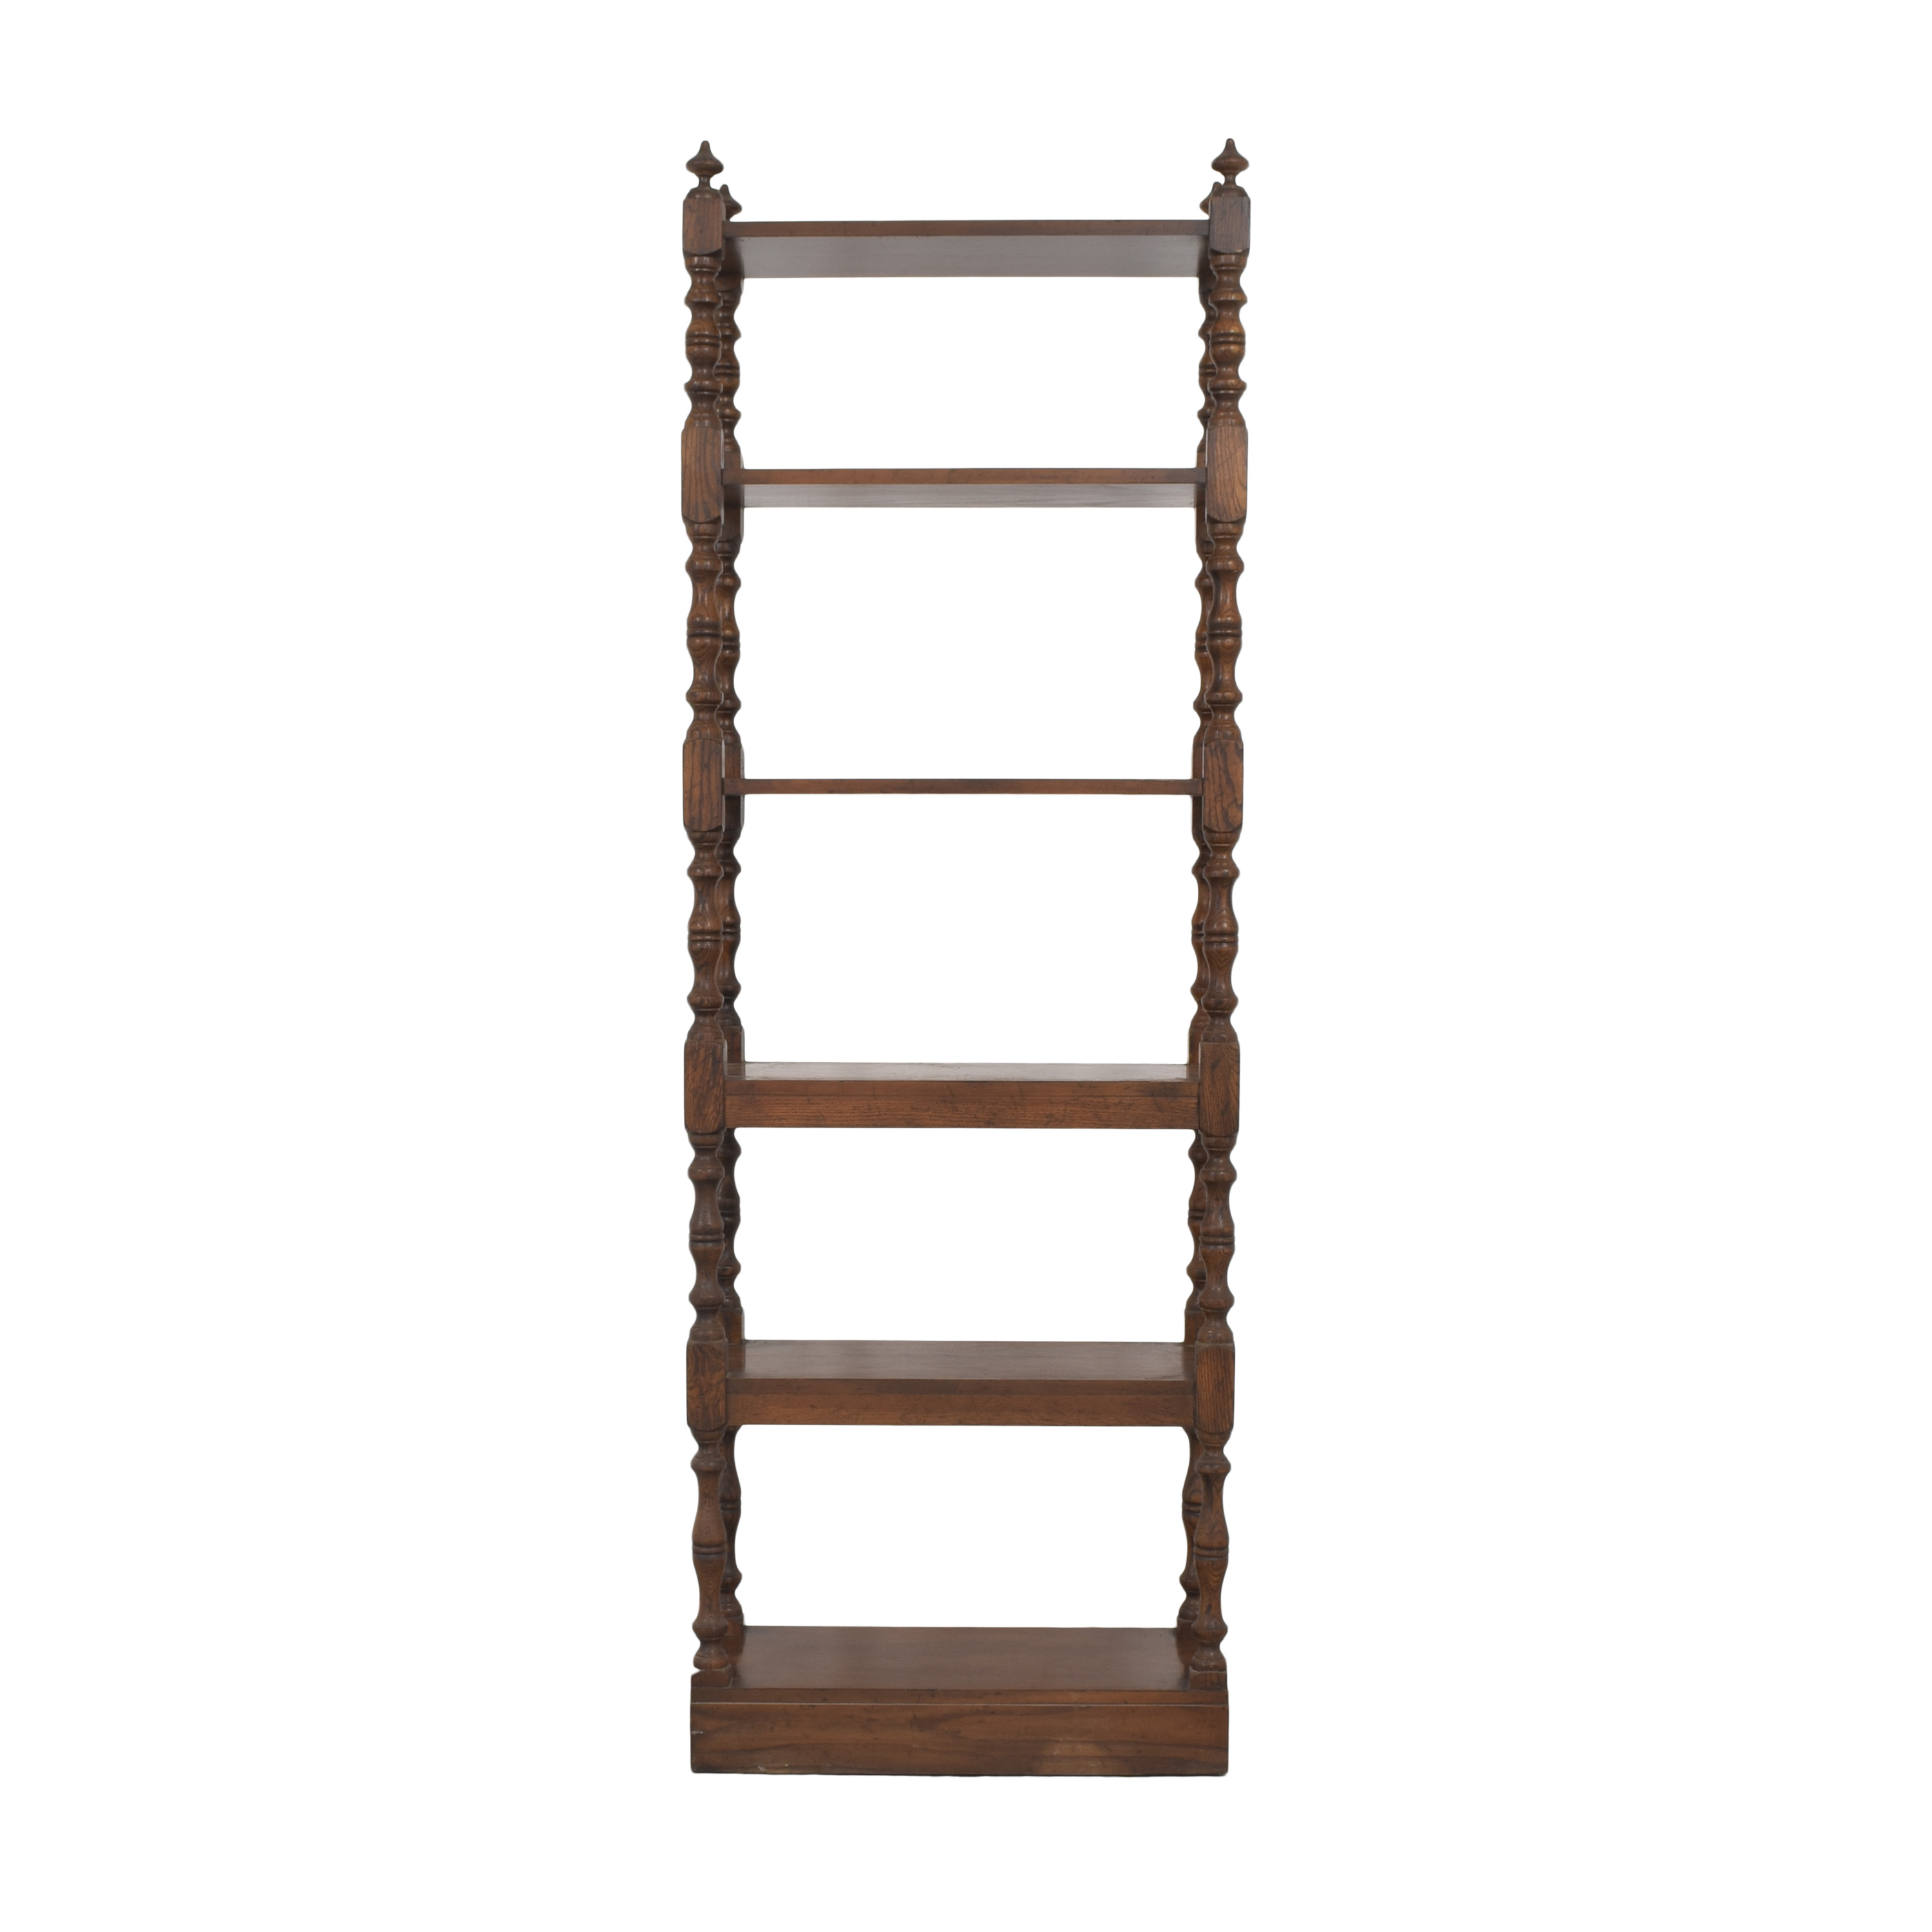 Drexel Heritage Drexel Heritage Turned Column Etagere Bookcase dimensions